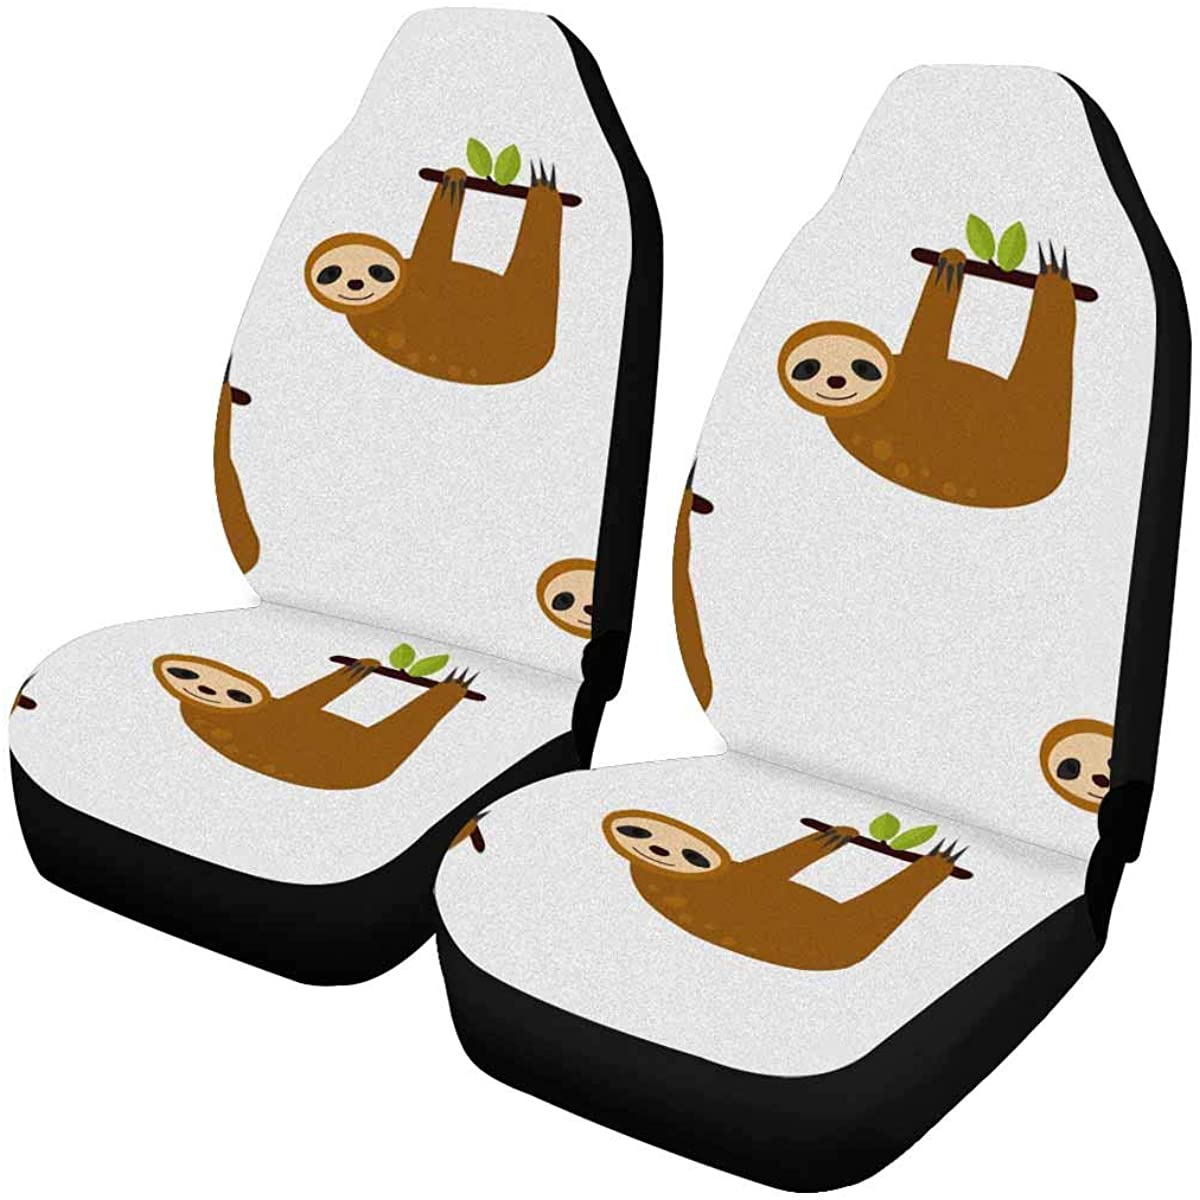 INTERESTPRINT Sloth on The Tree Front Car Seat Covers Set of 2, Car Front Seat Cushion Fit Car, Truck, SUV or Van